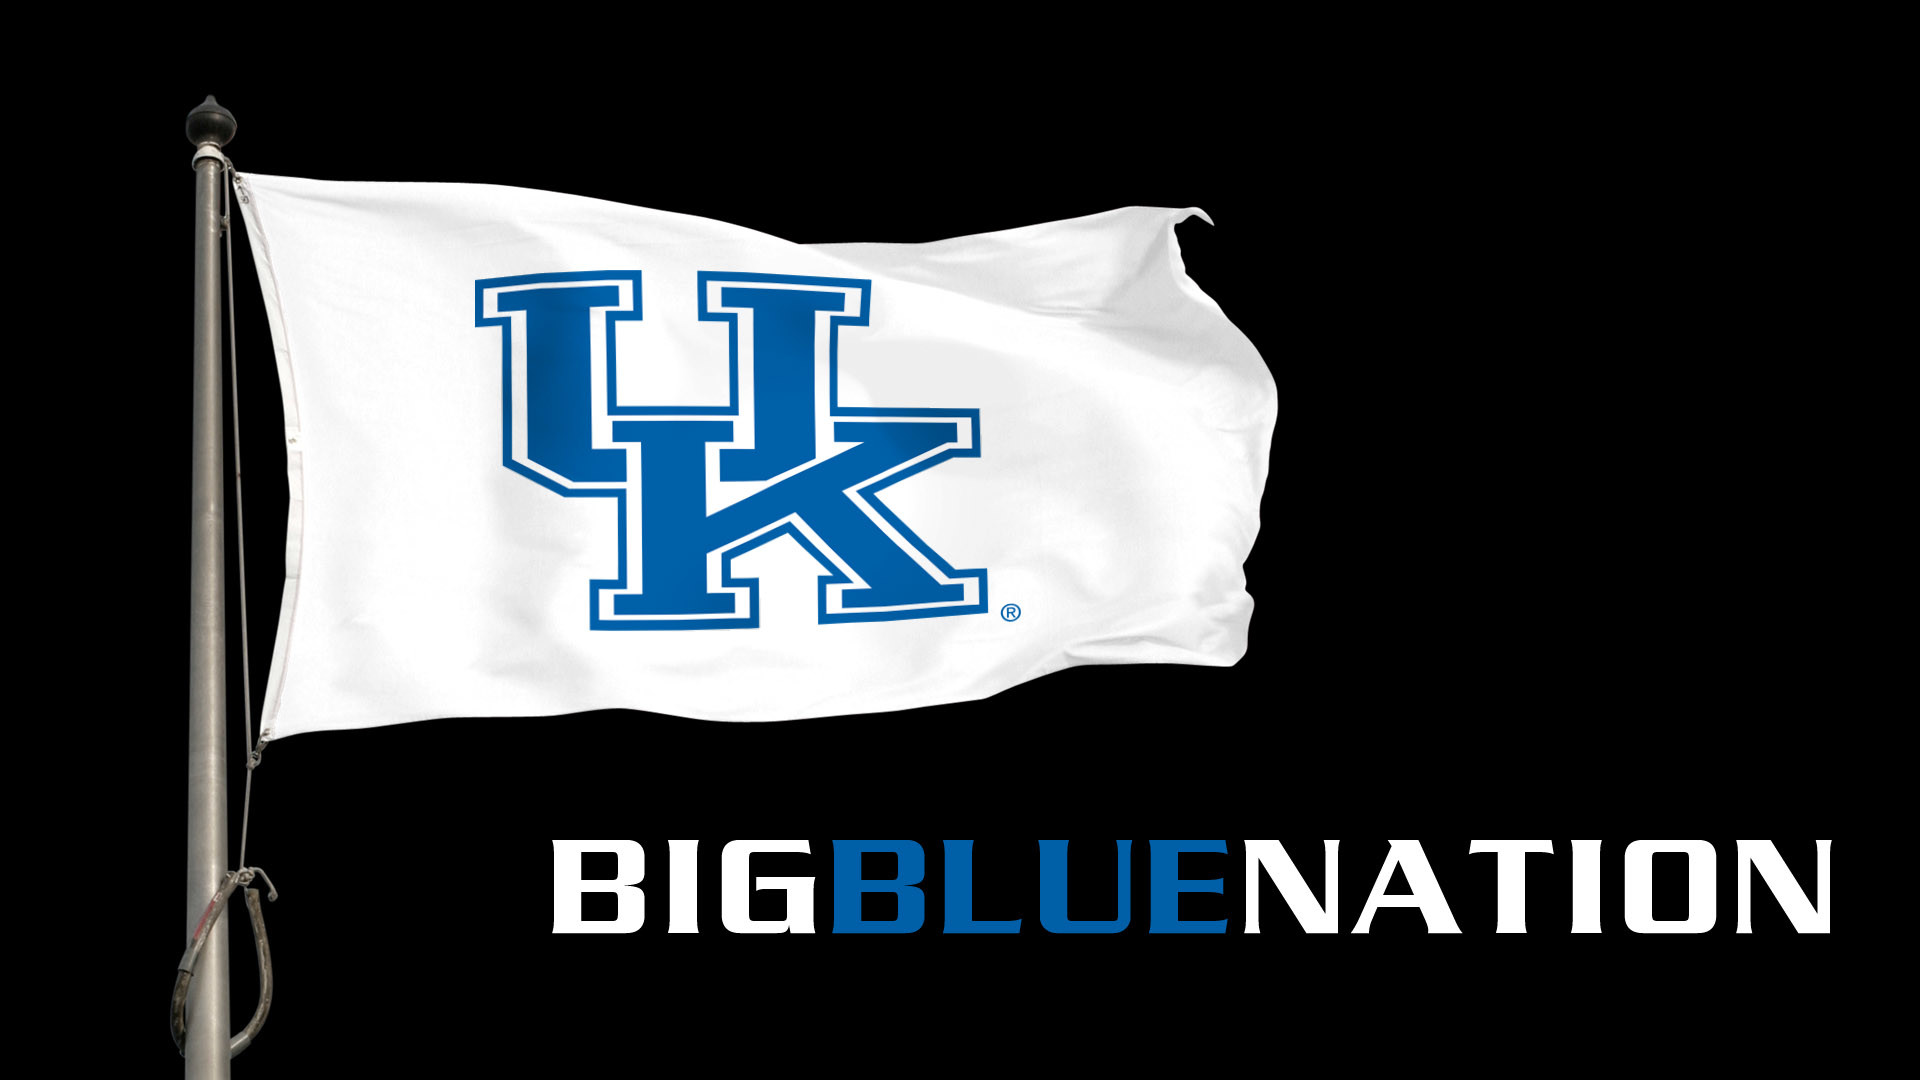 1920x1080 Big Blue Nation Flag Desktop Wallpaper